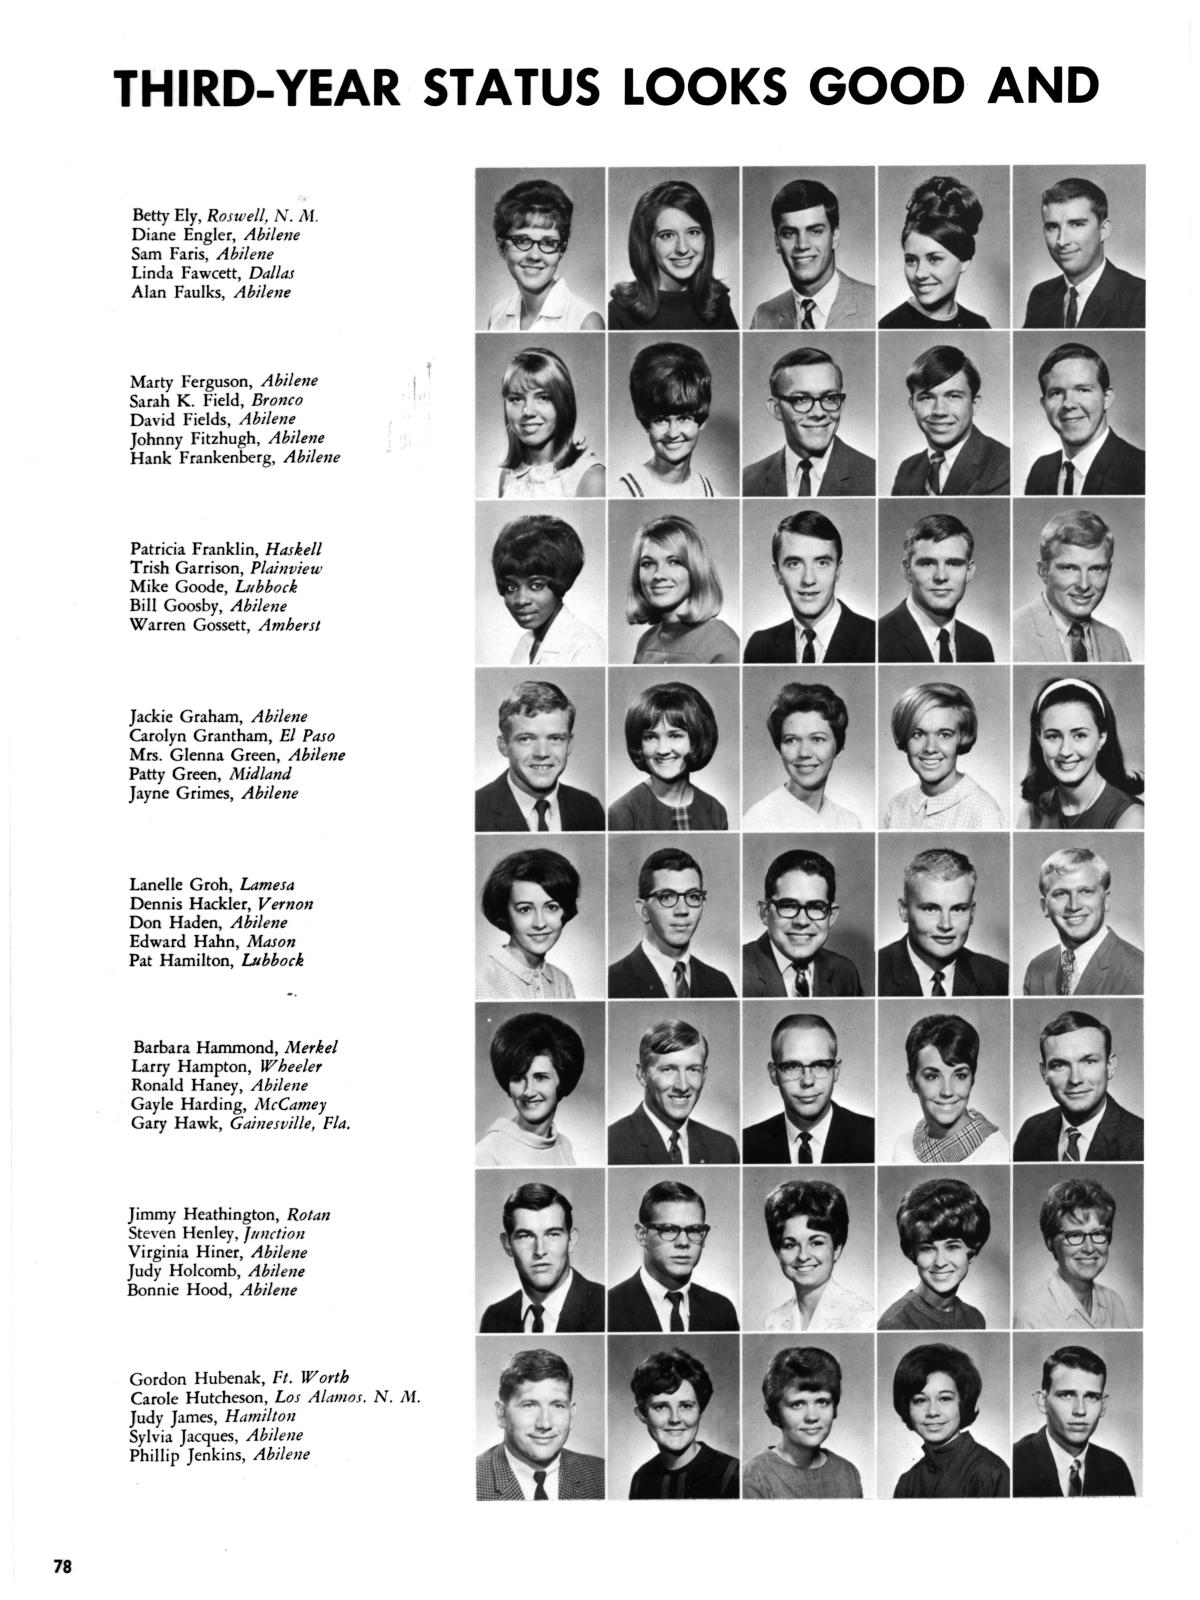 The Totem, Yearbook of McMurry College, 1968 - Page 78 - The